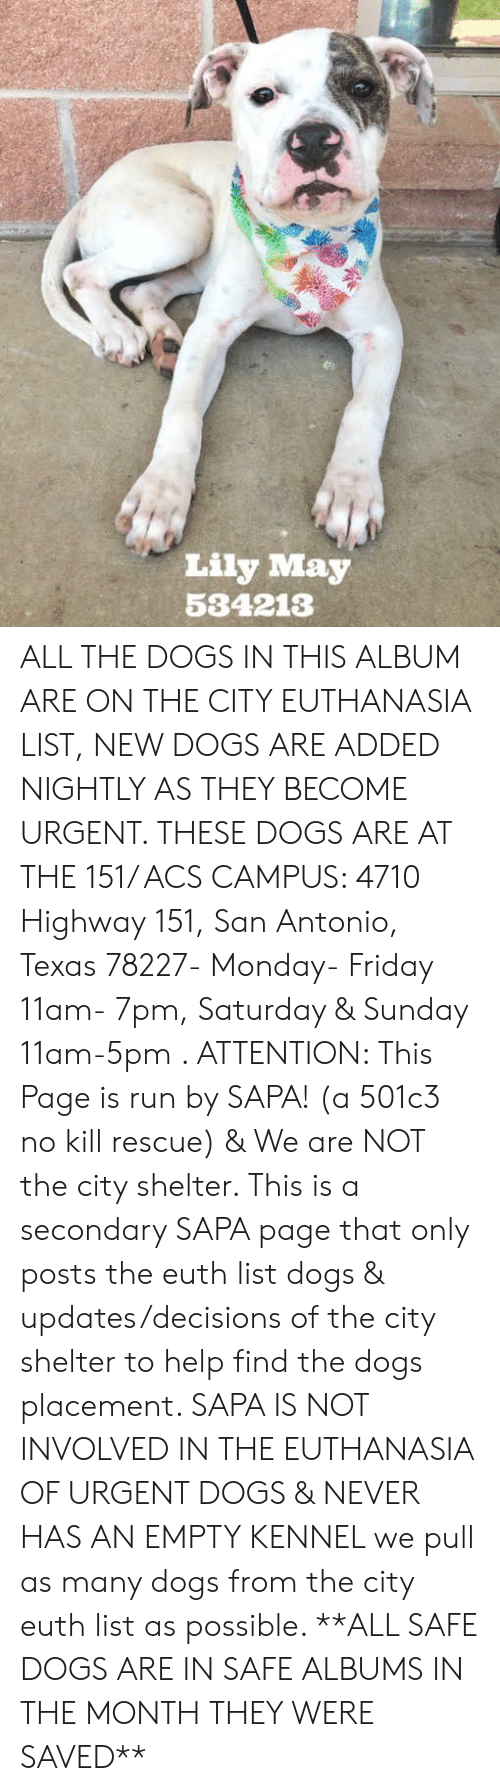 Dogs, Friday, and Memes: Lily May  534213 ALL THE DOGS IN THIS ALBUM ARE ON THE CITY EUTHANASIA LIST, NEW DOGS ARE ADDED NIGHTLY AS THEY BECOME URGENT. THESE DOGS ARE AT THE 151/ ACS CAMPUS: 4710 Highway 151, San Antonio, Texas 78227- Monday- Friday 11am- 7pm, Saturday & Sunday 11am-5pm . ATTENTION: This Page is run by SAPA! (a 501c3 no kill rescue) & We are NOT the city shelter. This is a secondary SAPA page that only posts the euth list dogs & updates/decisions of the city shelter to help find the dogs placement. SAPA IS NOT INVOLVED IN THE EUTHANASIA OF URGENT DOGS &  NEVER HAS AN EMPTY KENNEL we pull as many dogs from the city euth list as possible. **ALL SAFE DOGS ARE IN SAFE ALBUMS IN THE MONTH THEY WERE SAVED**